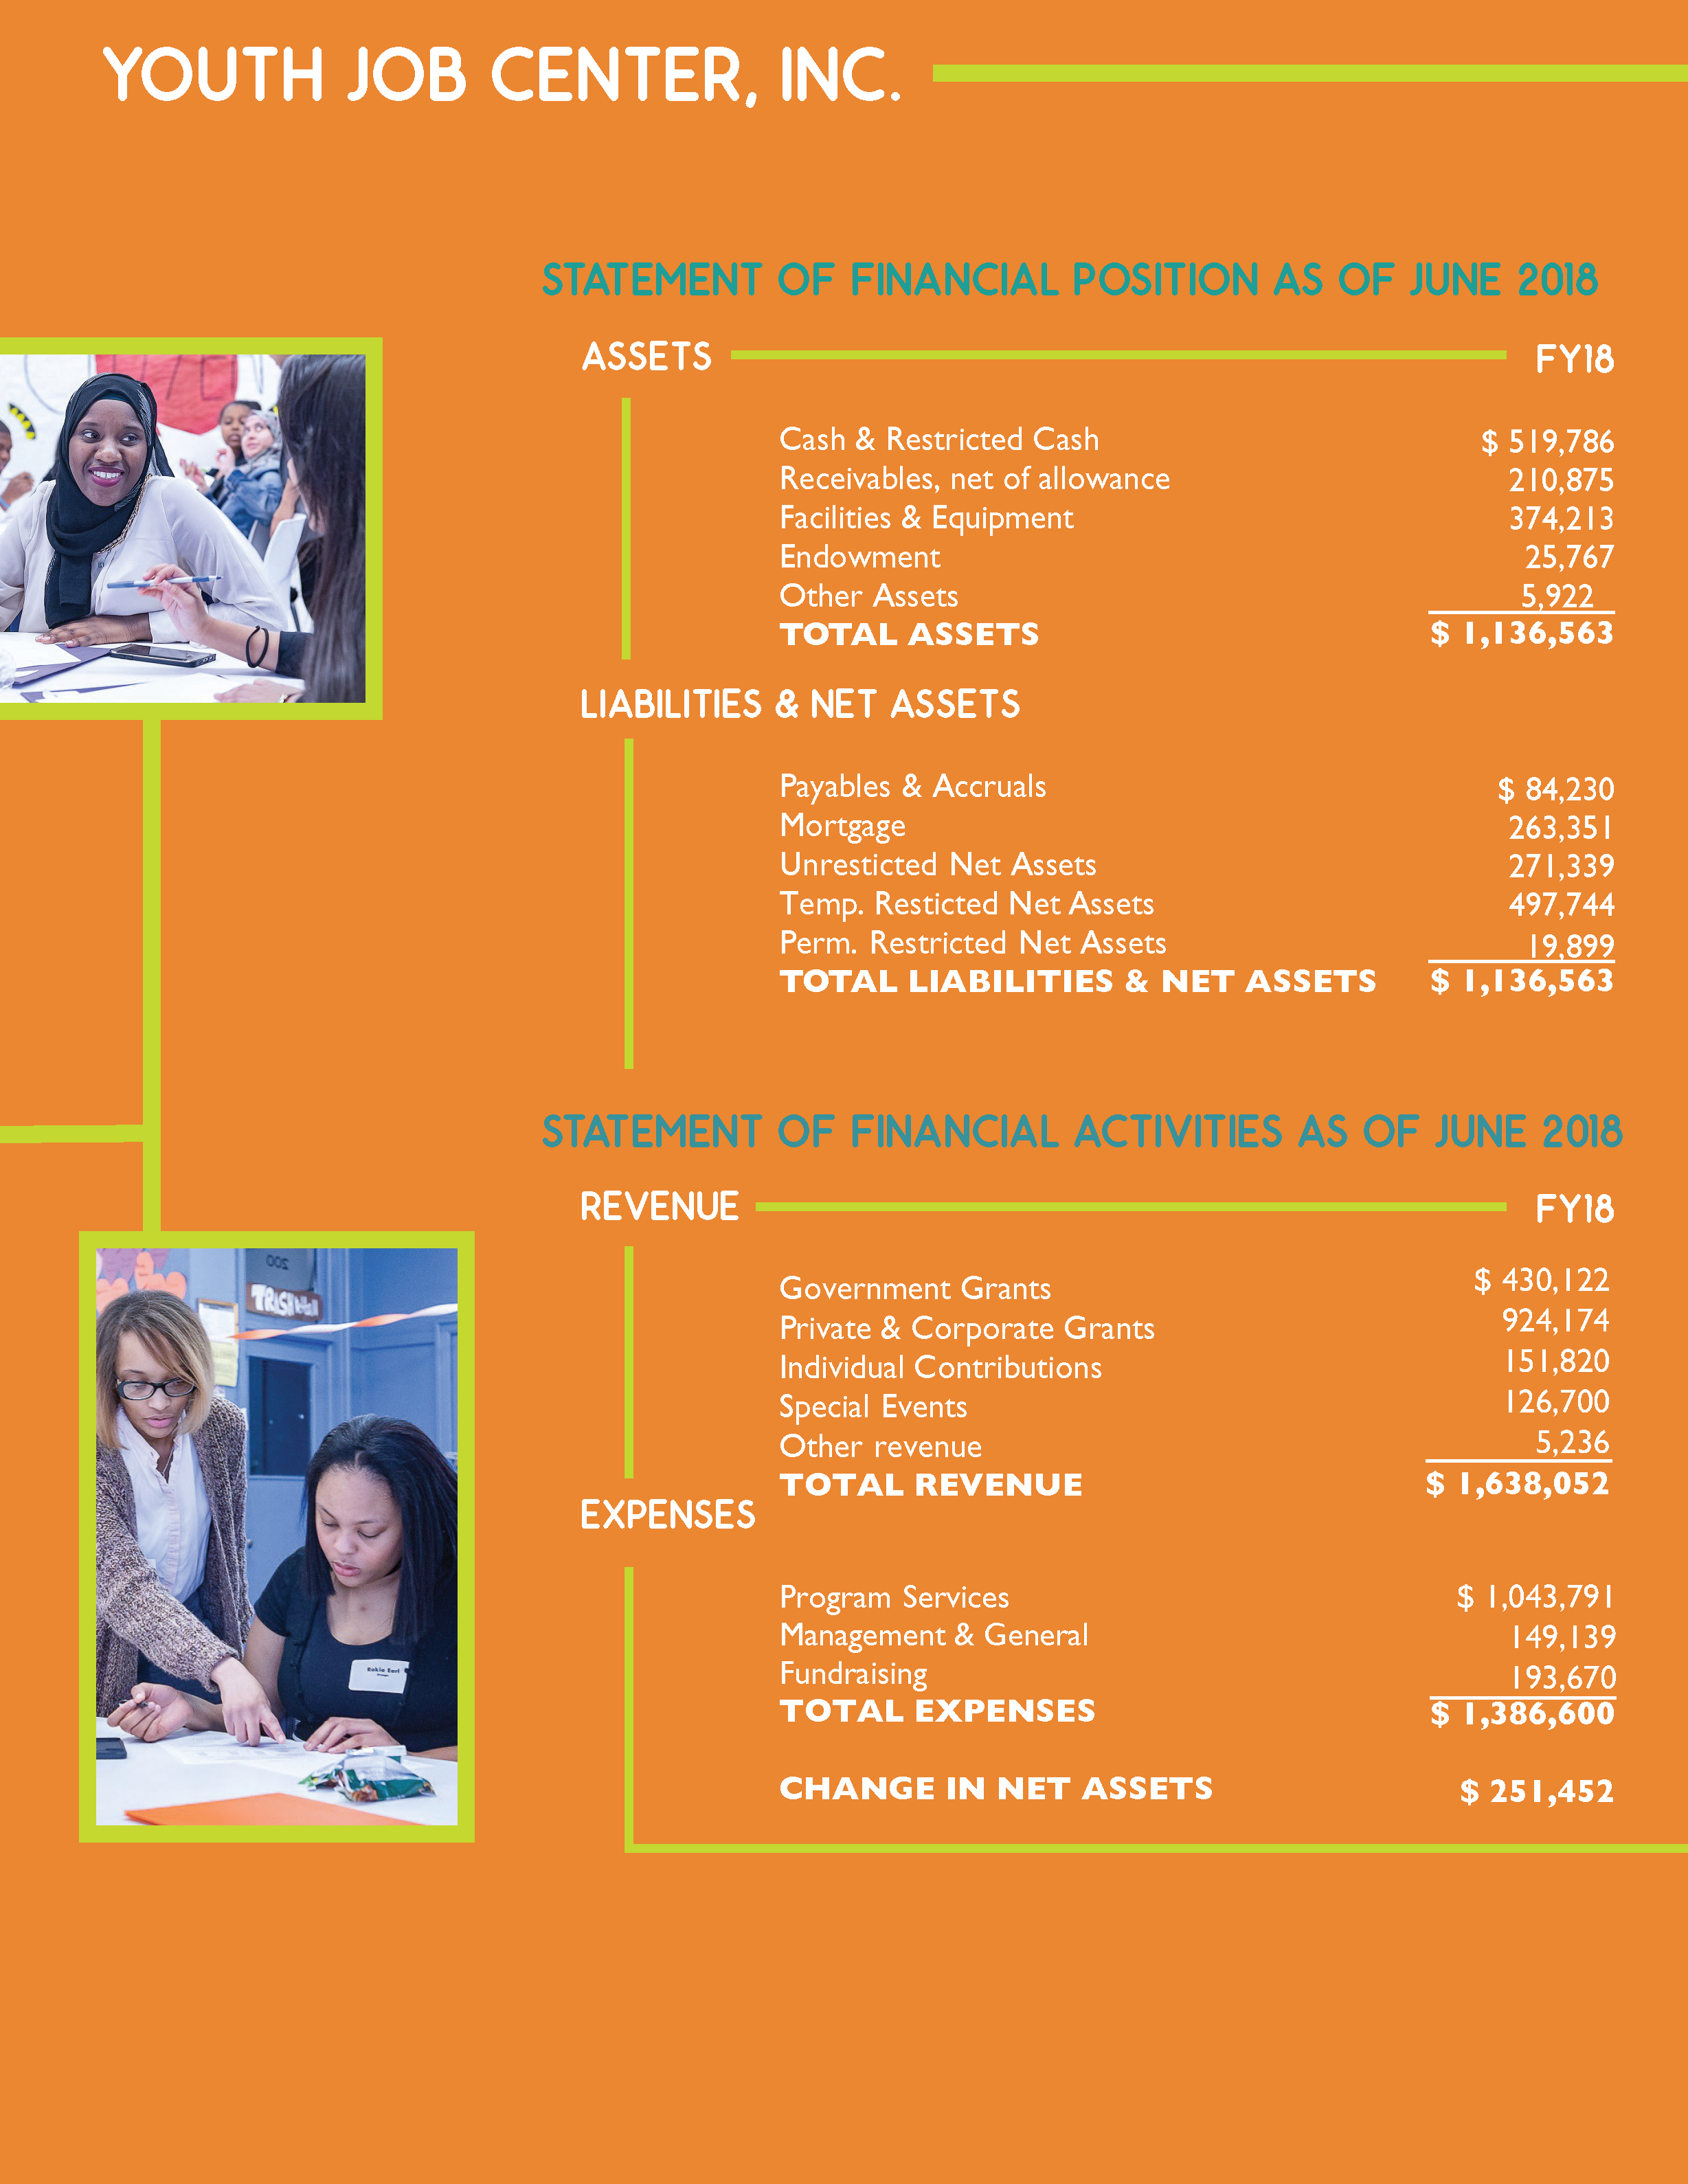 Youth Job Center Annual Report 2017-2018 page 12 and 13_Page_2.png